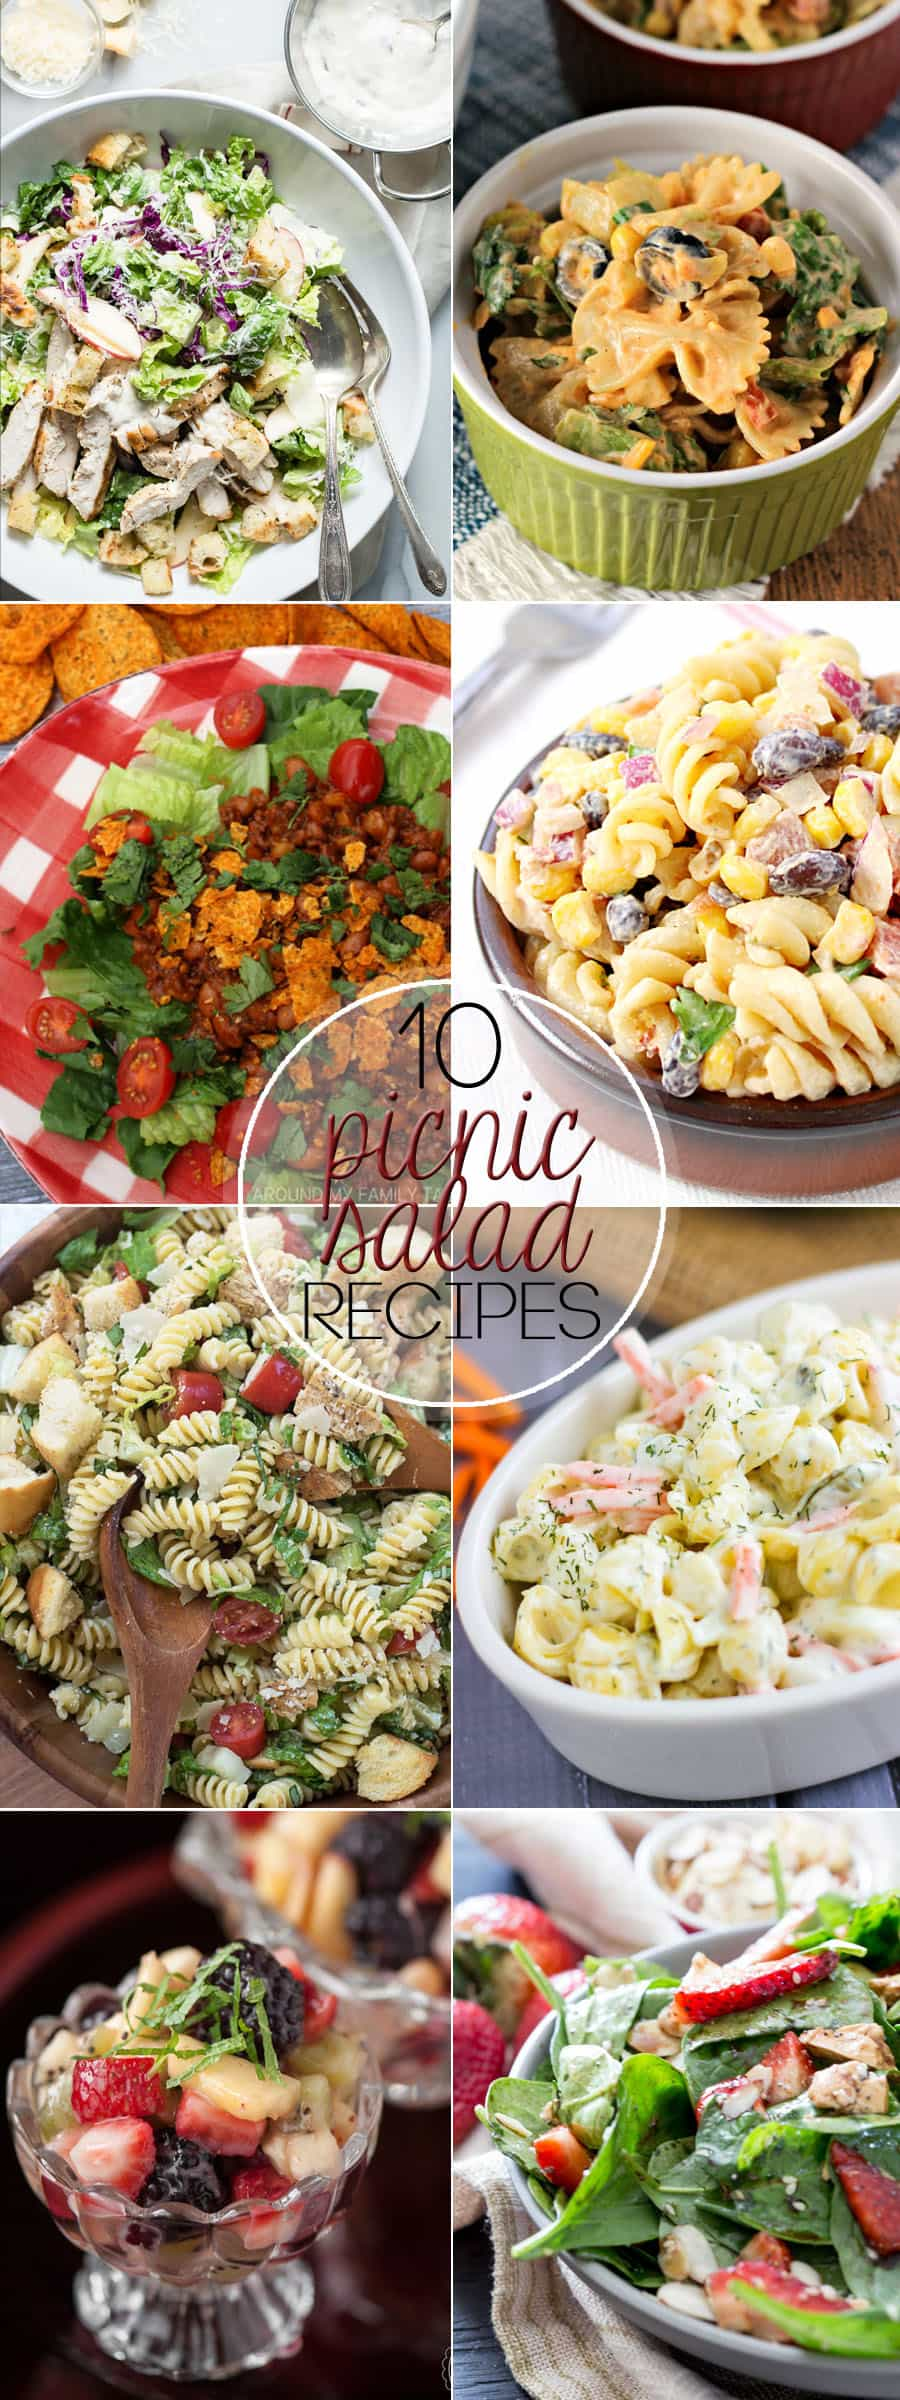 This time of year, we celebrate the outdoors with our friends and families. I am sharing 10 Picnic Salads Perfect for Potlucks that everyone will love!